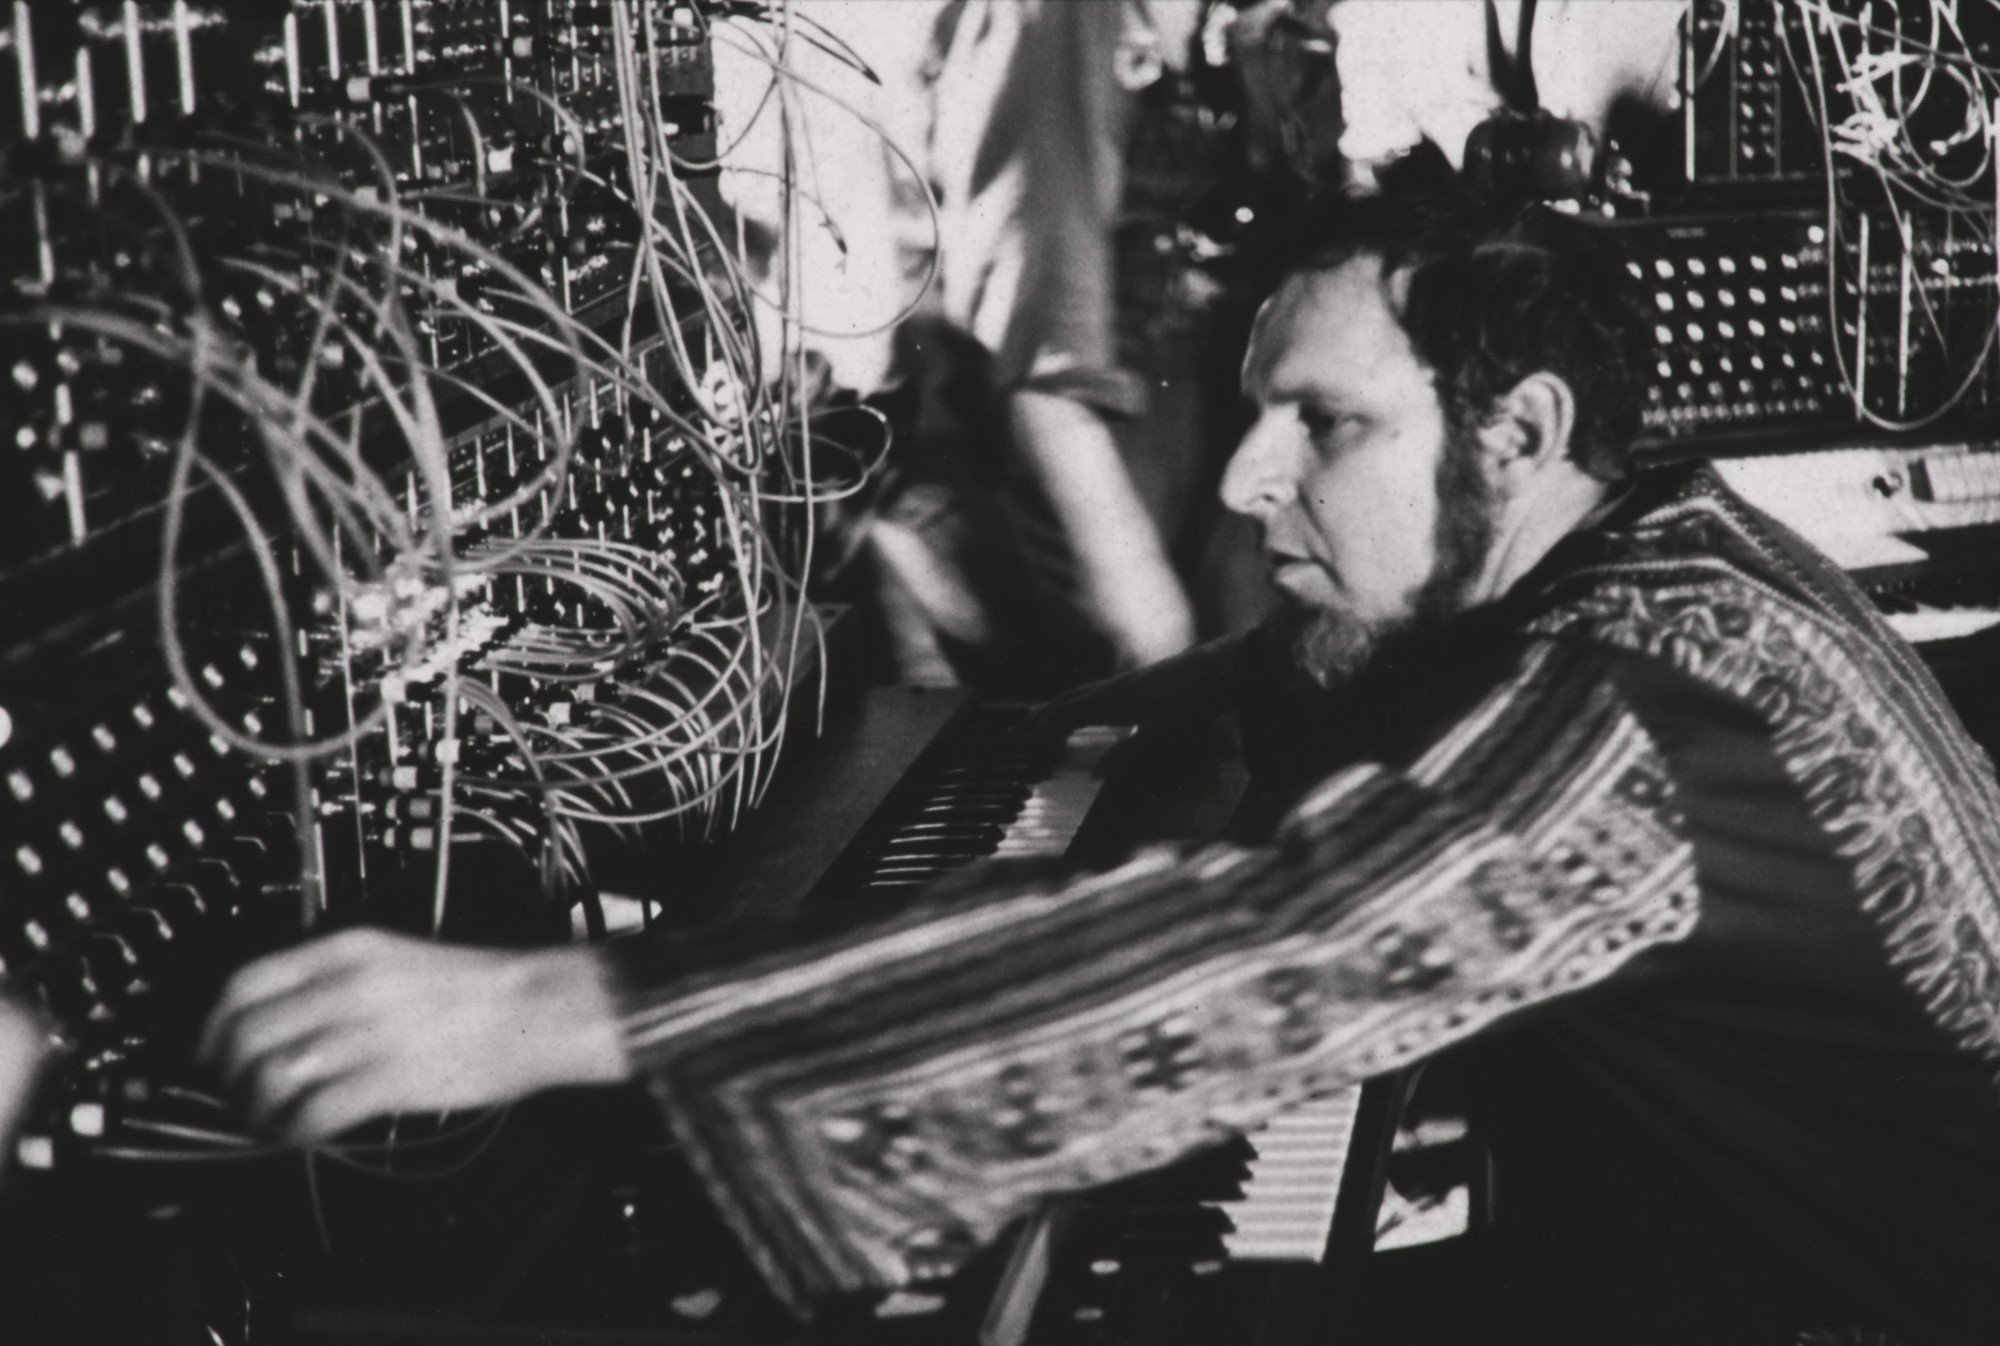 Herb Deutsch performs at the Moog Synthesizer Concert-Demonstration